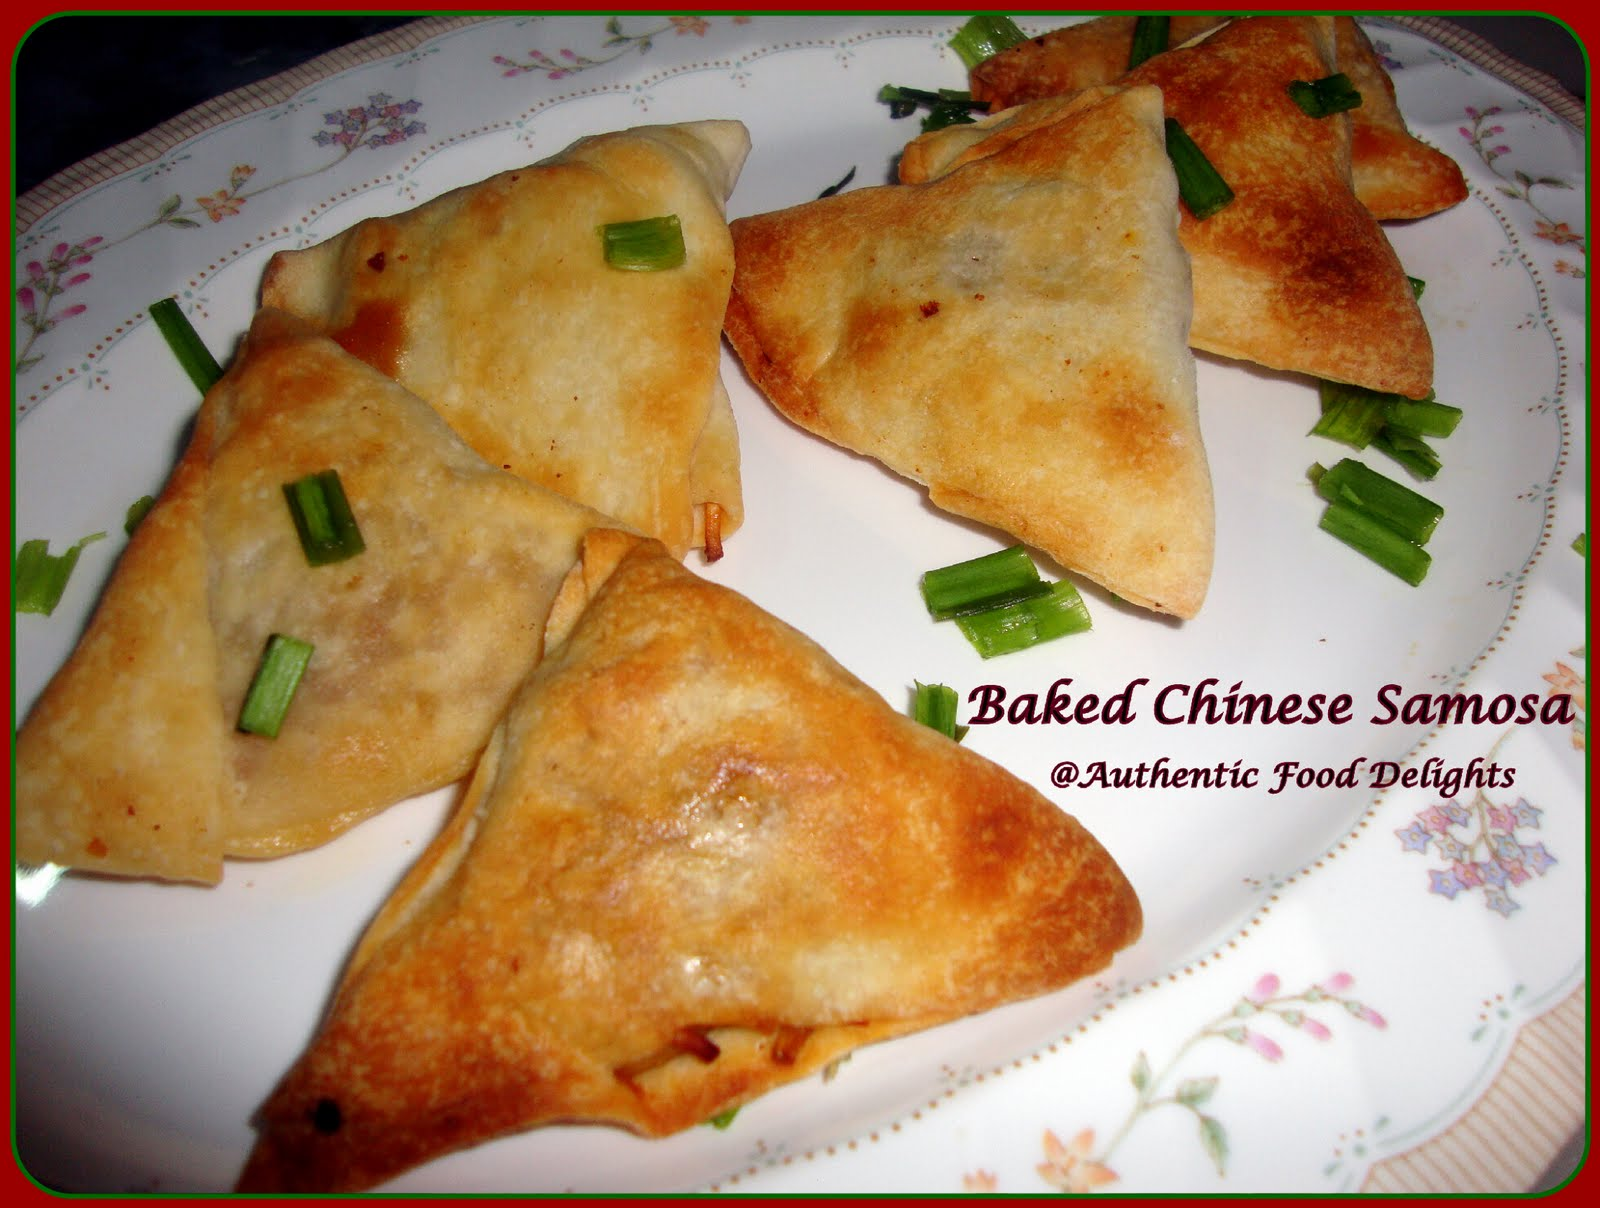 Authentic Food Delights: Baked Chinese Samosa